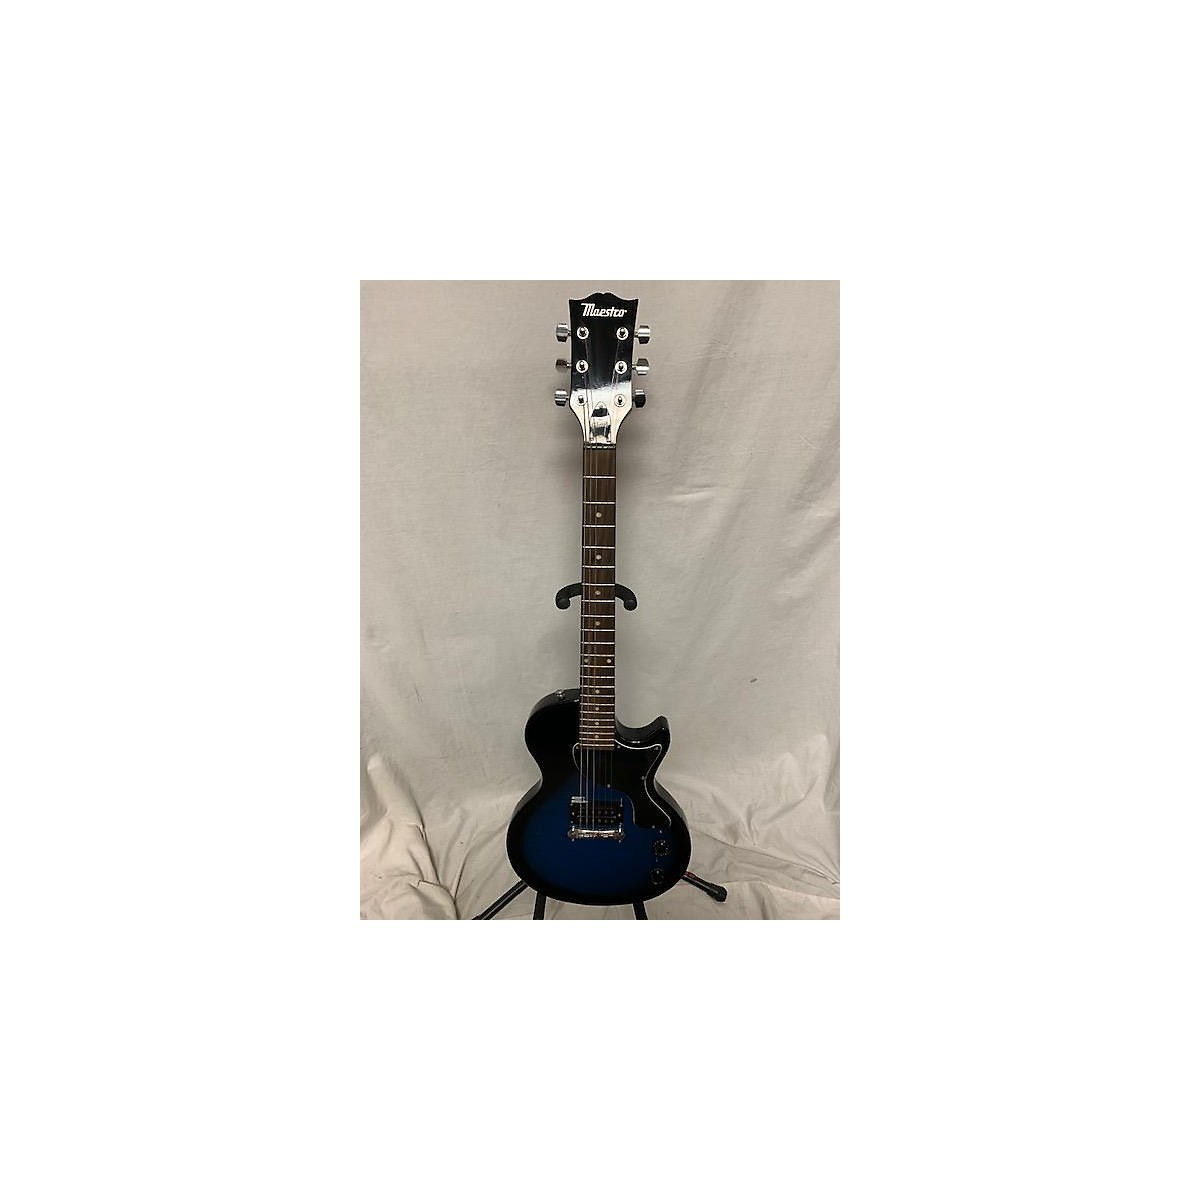 Maestro Les Paul Jr Solid Body Electric Guitar